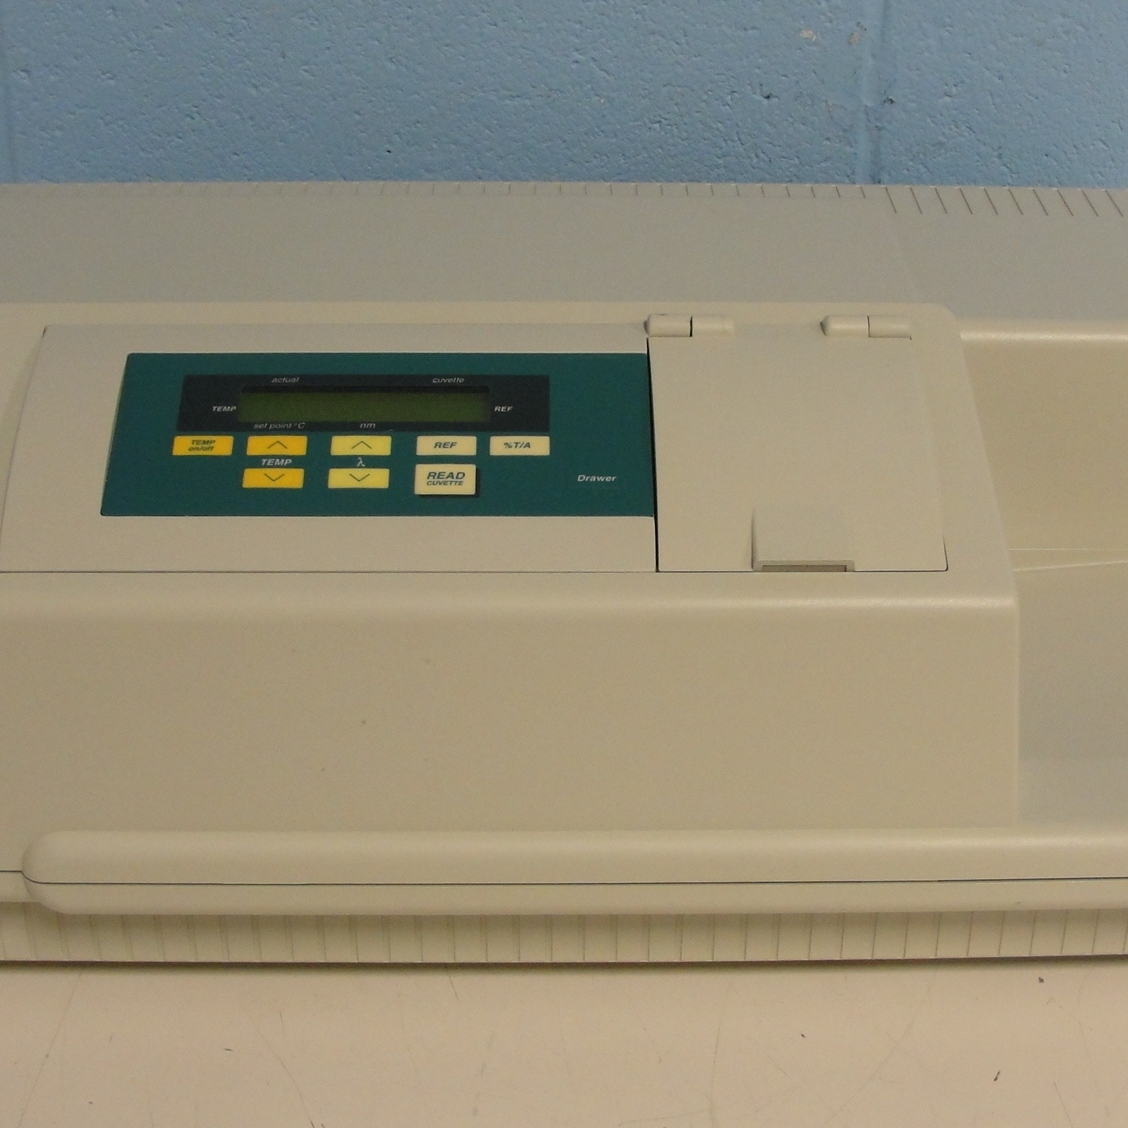 SpectraMax Plus Absorbance Microplate Reader